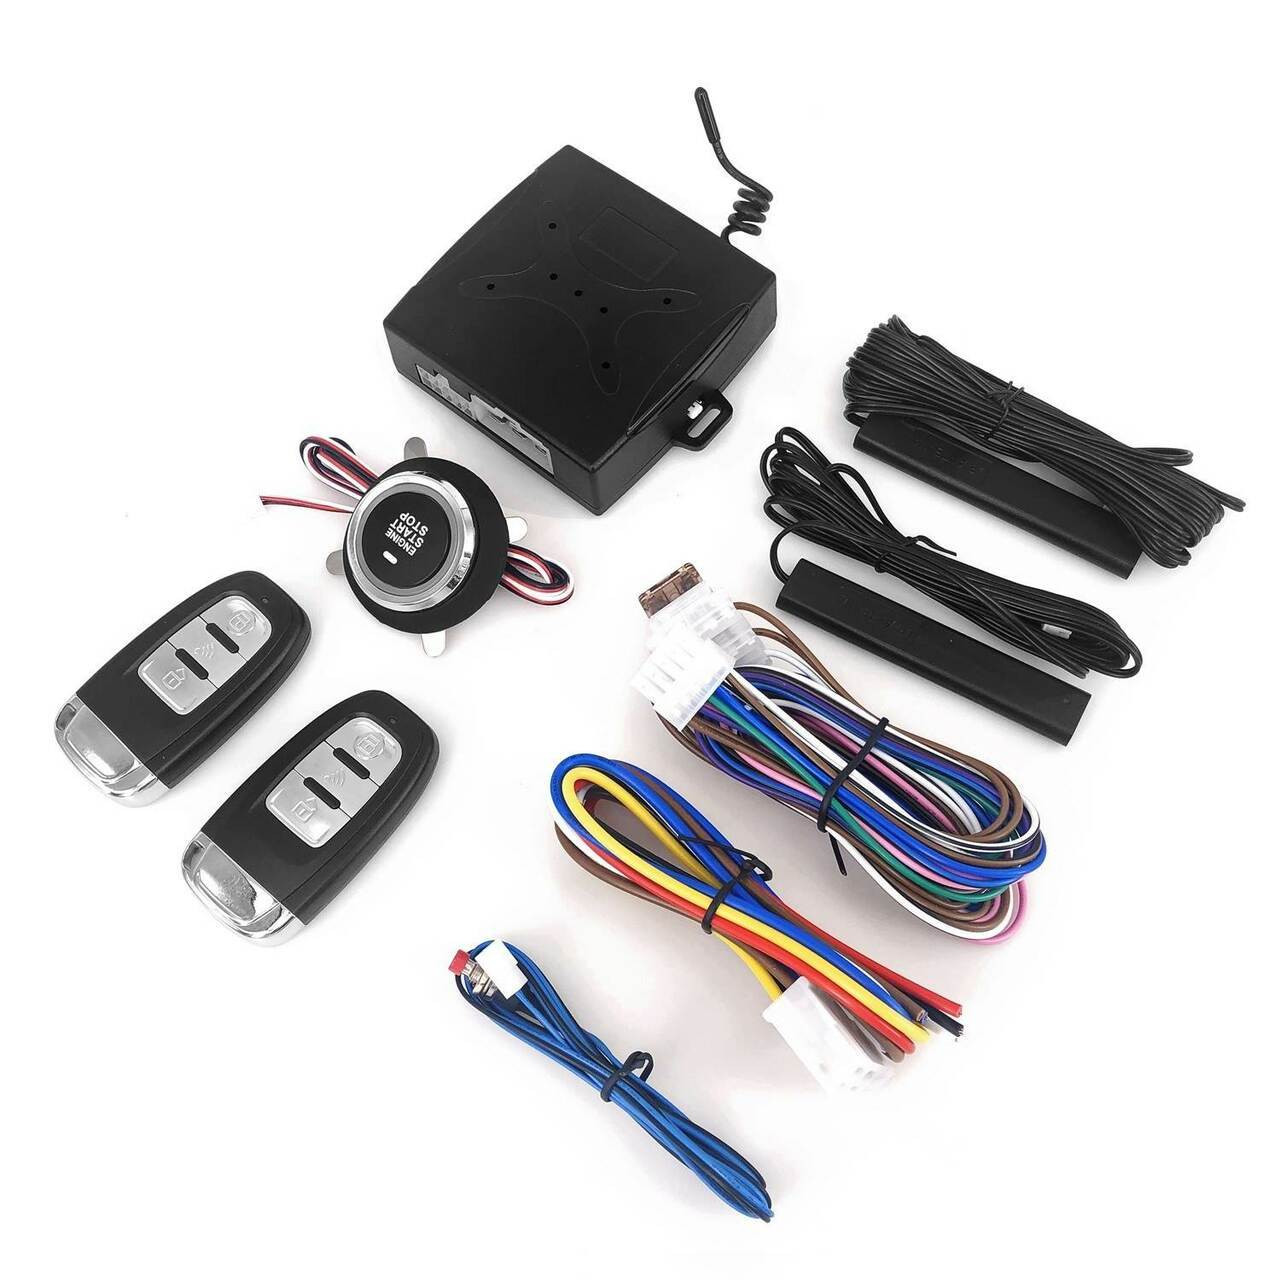 12Volt Universal One-click Boot System Modify Keyless Access System Alarm System Remote Starts Remote Control Auto Car One Starts Stop Engine System